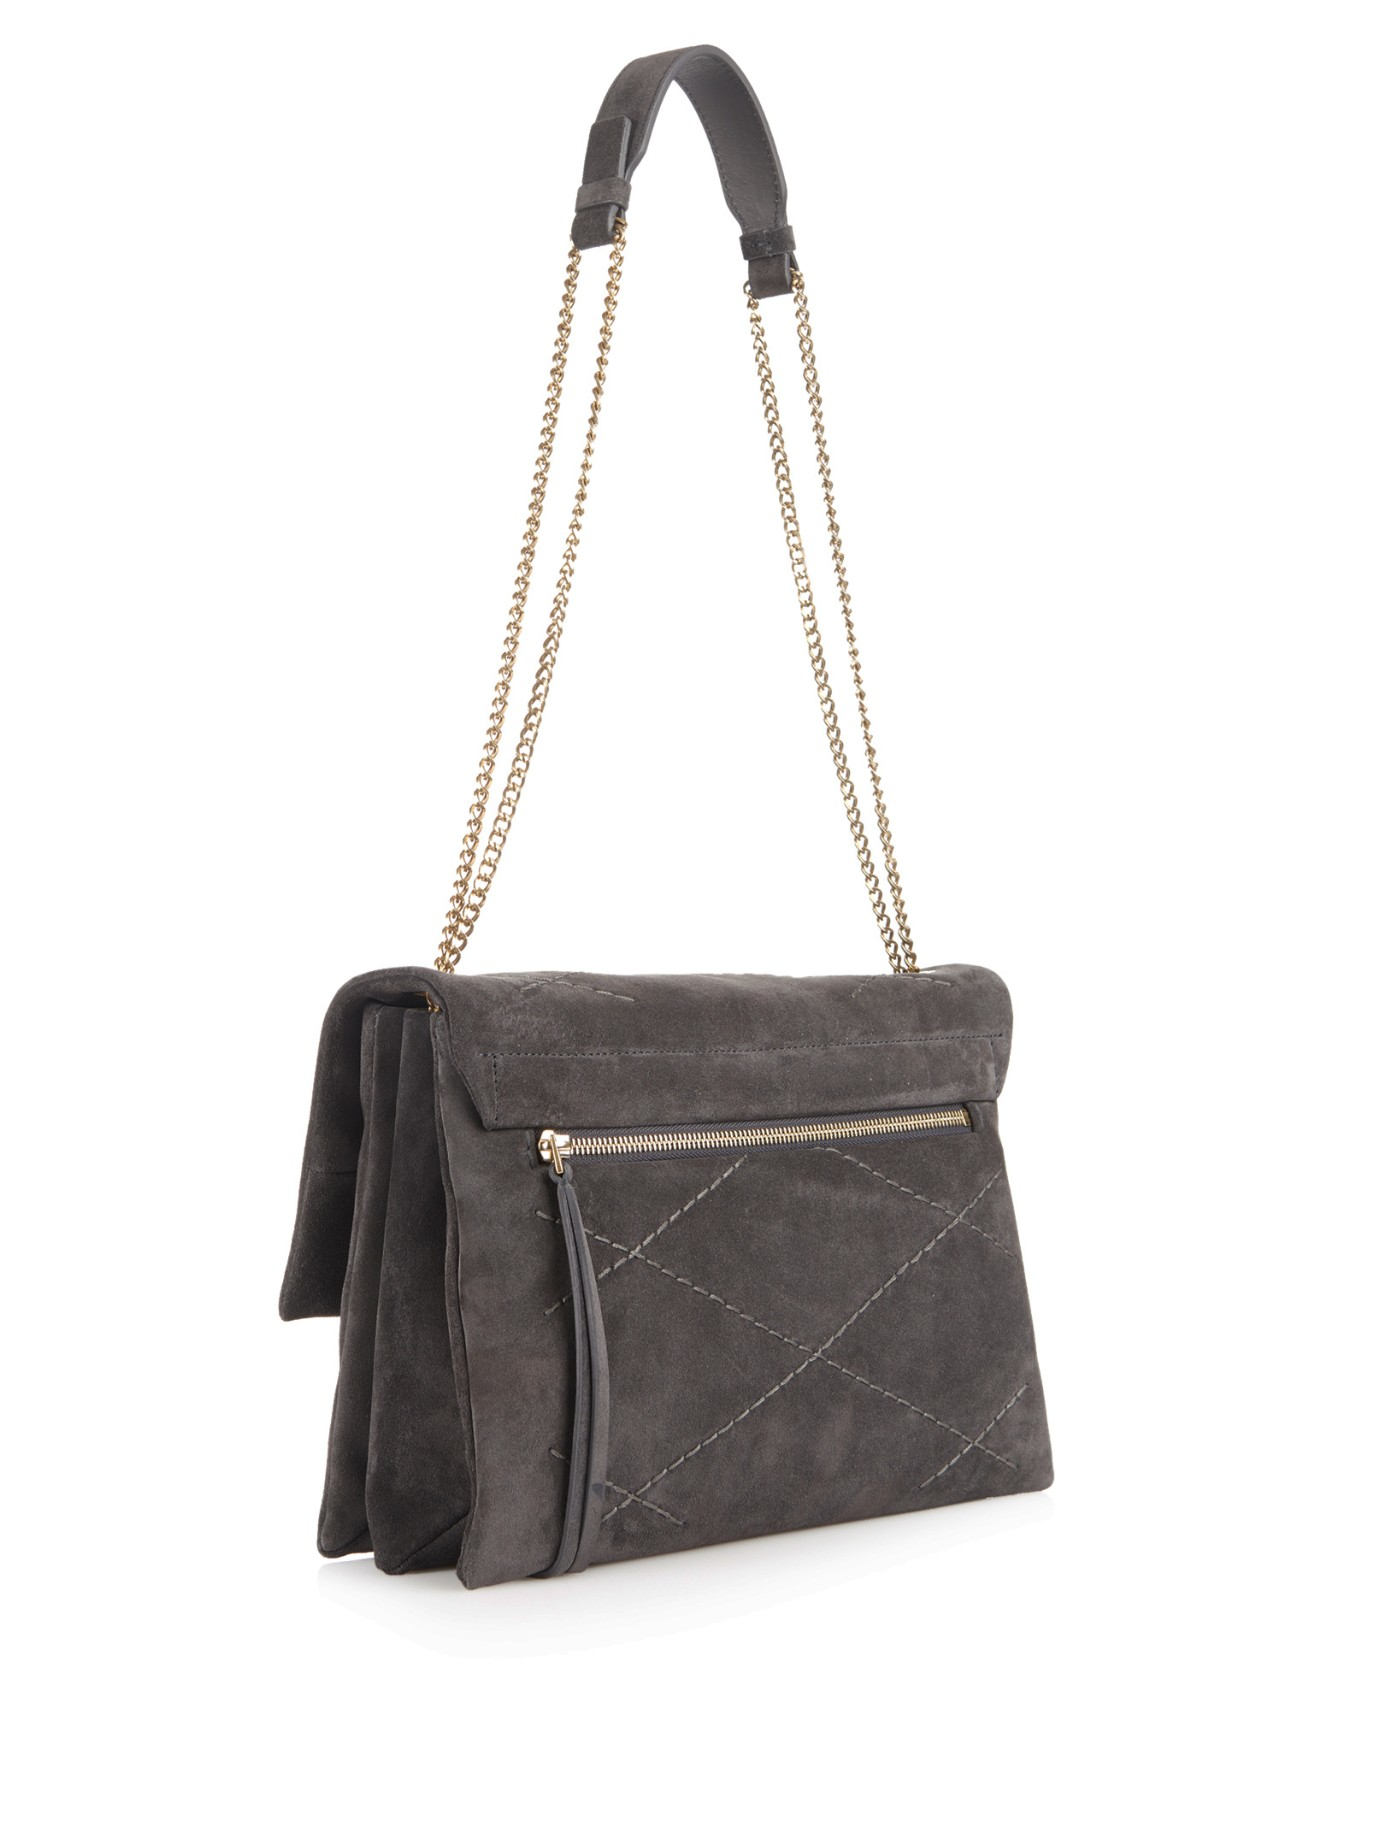 fdcd007883 Lanvin Sugar Suede Shoulder Bag in Gray - Lyst